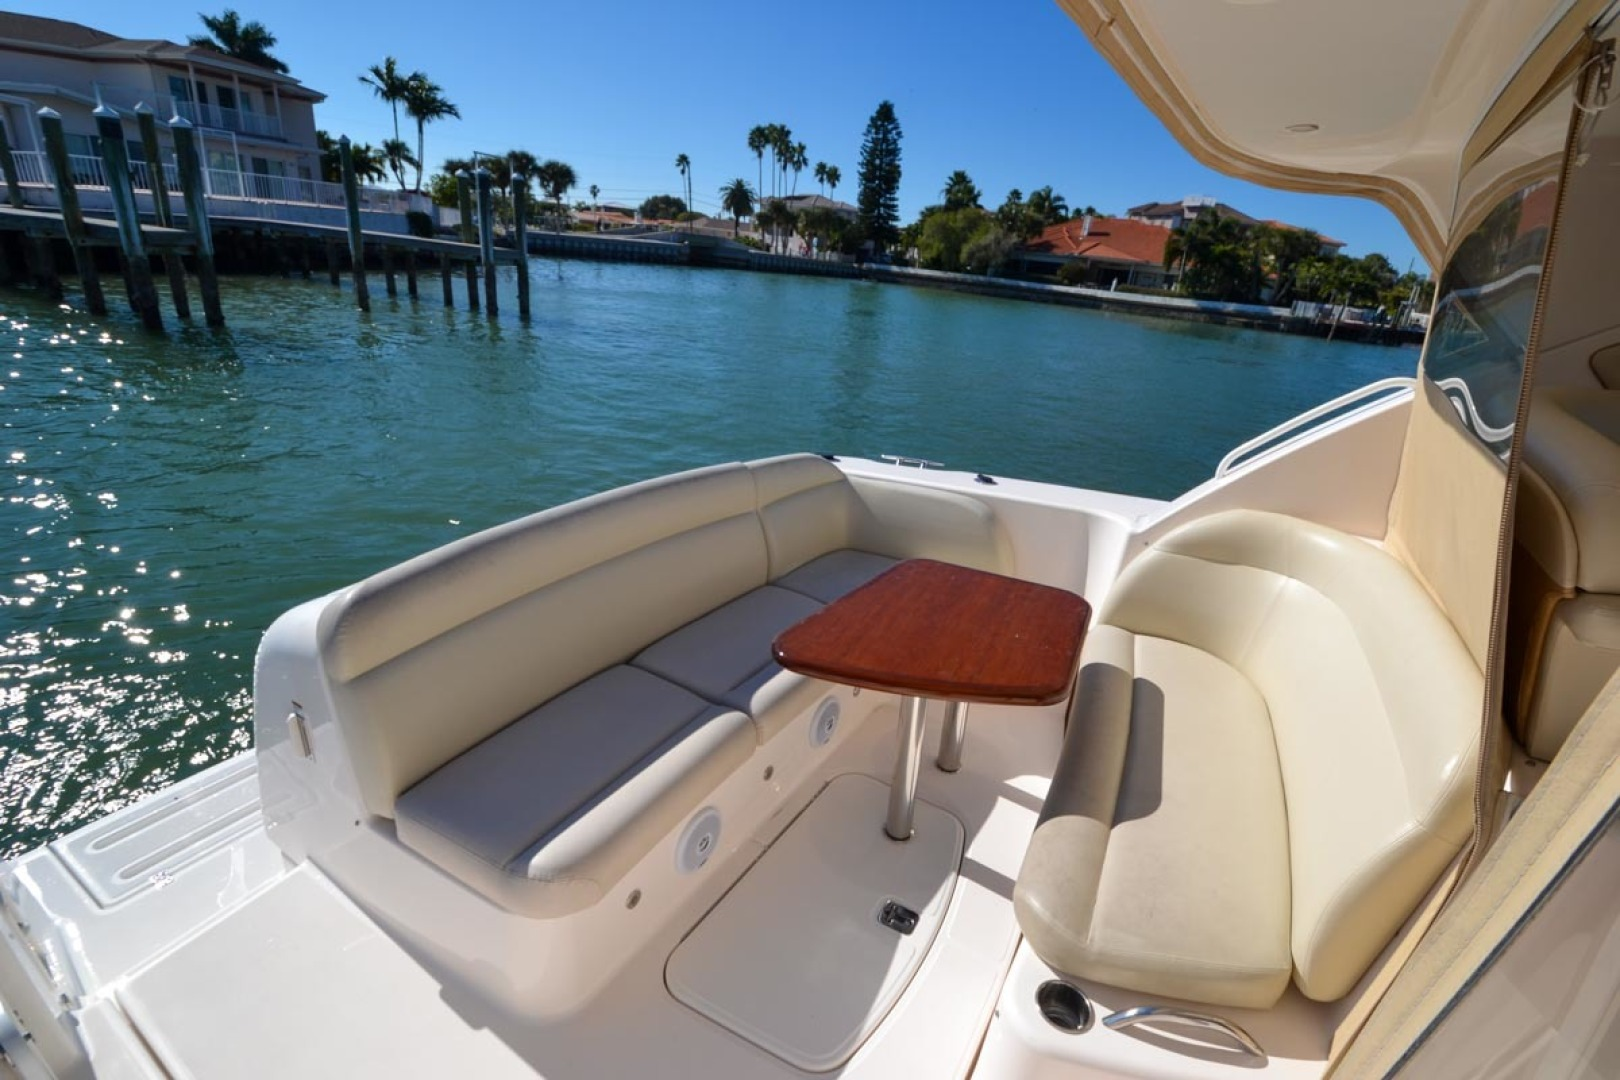 Tiara Yachts-35 sovran 2008-Just Perfect Clearwater-Florida-United States-1577481 | Thumbnail